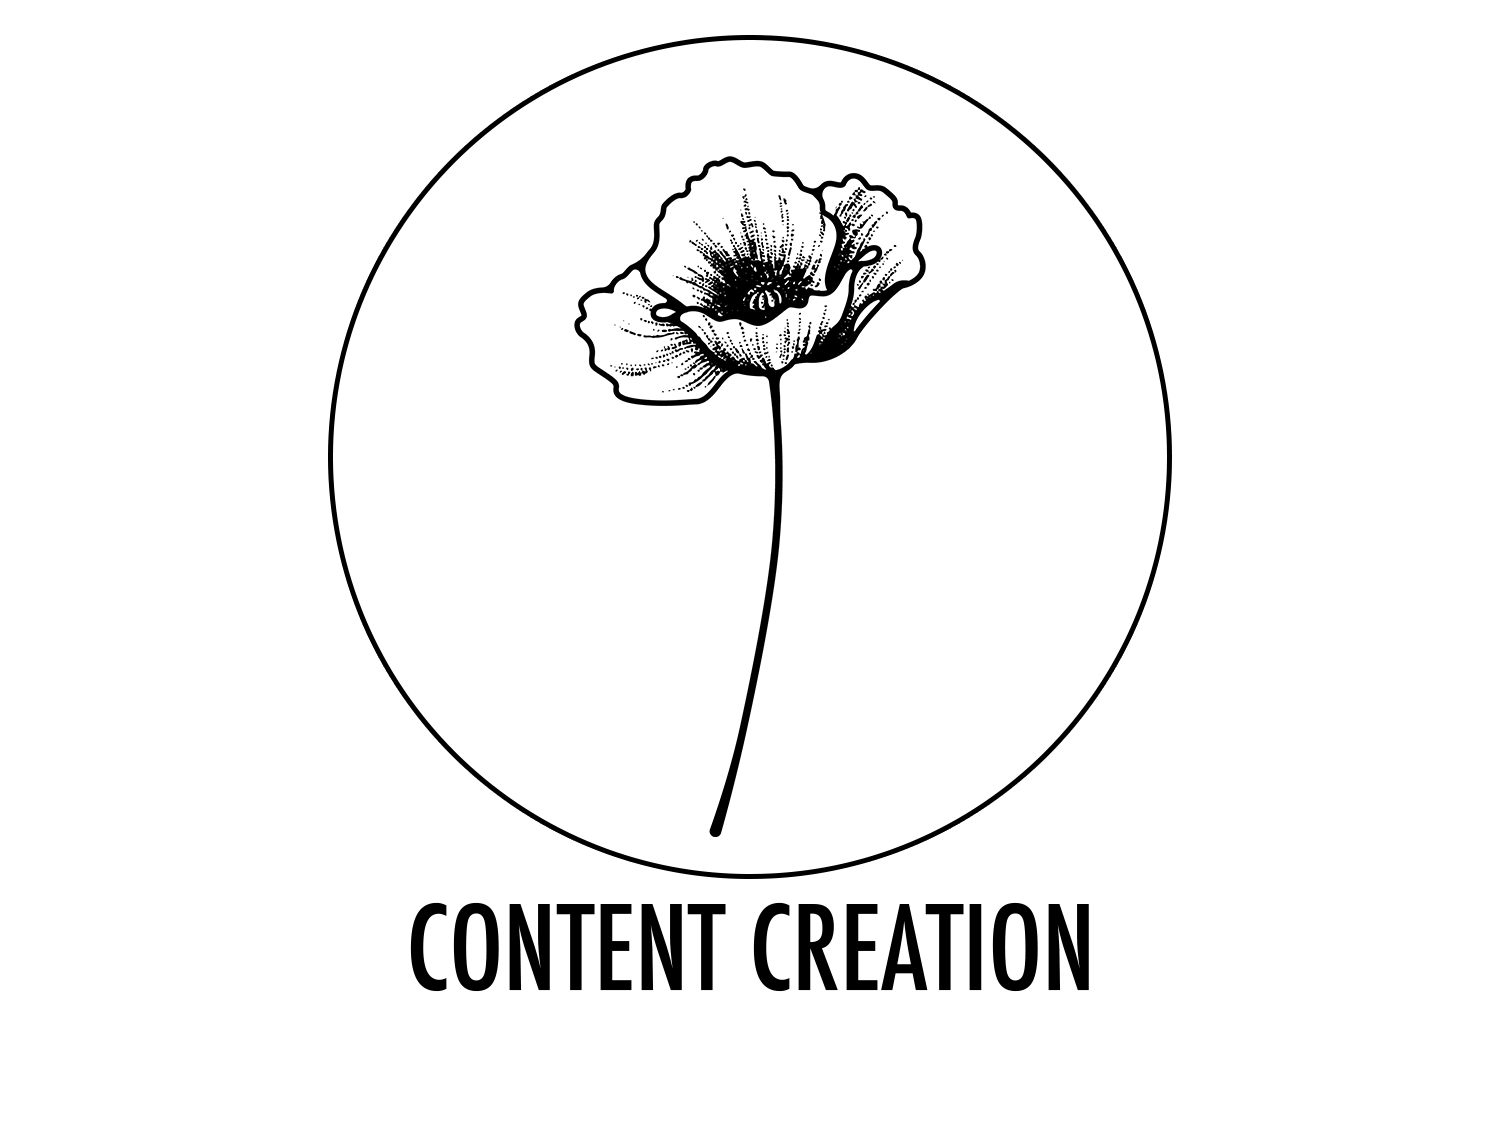 The Poppyfield Agency proudly offers services for creating the exact media you need to reflect your true vision.